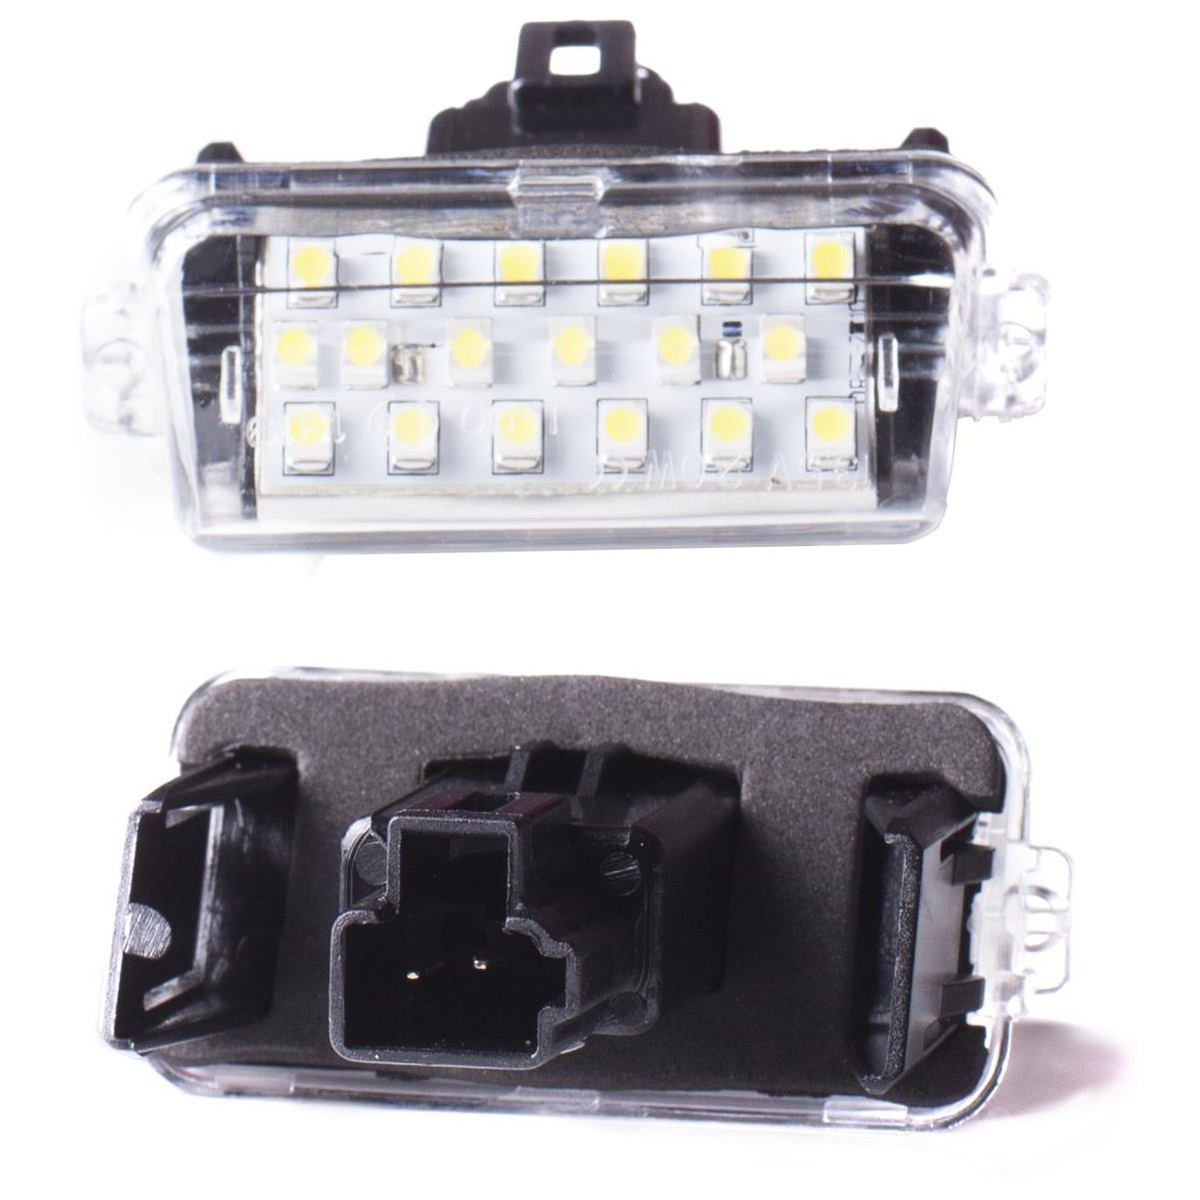 LED license plate light for Camry from 2012